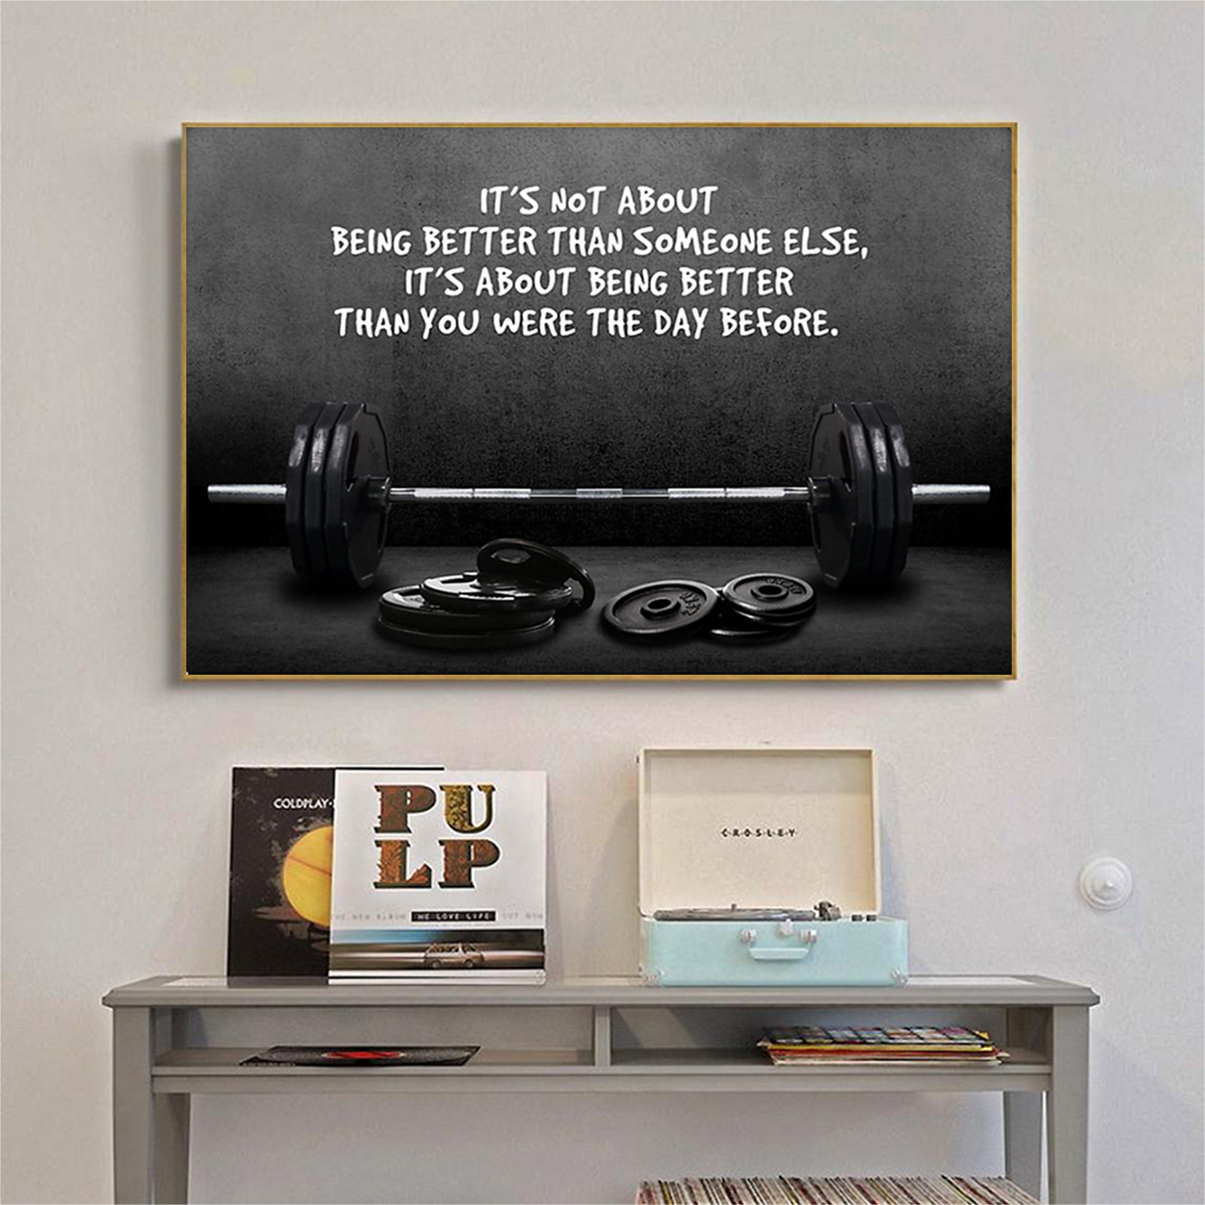 Gym barbell it's not about being better than someone else poster A2